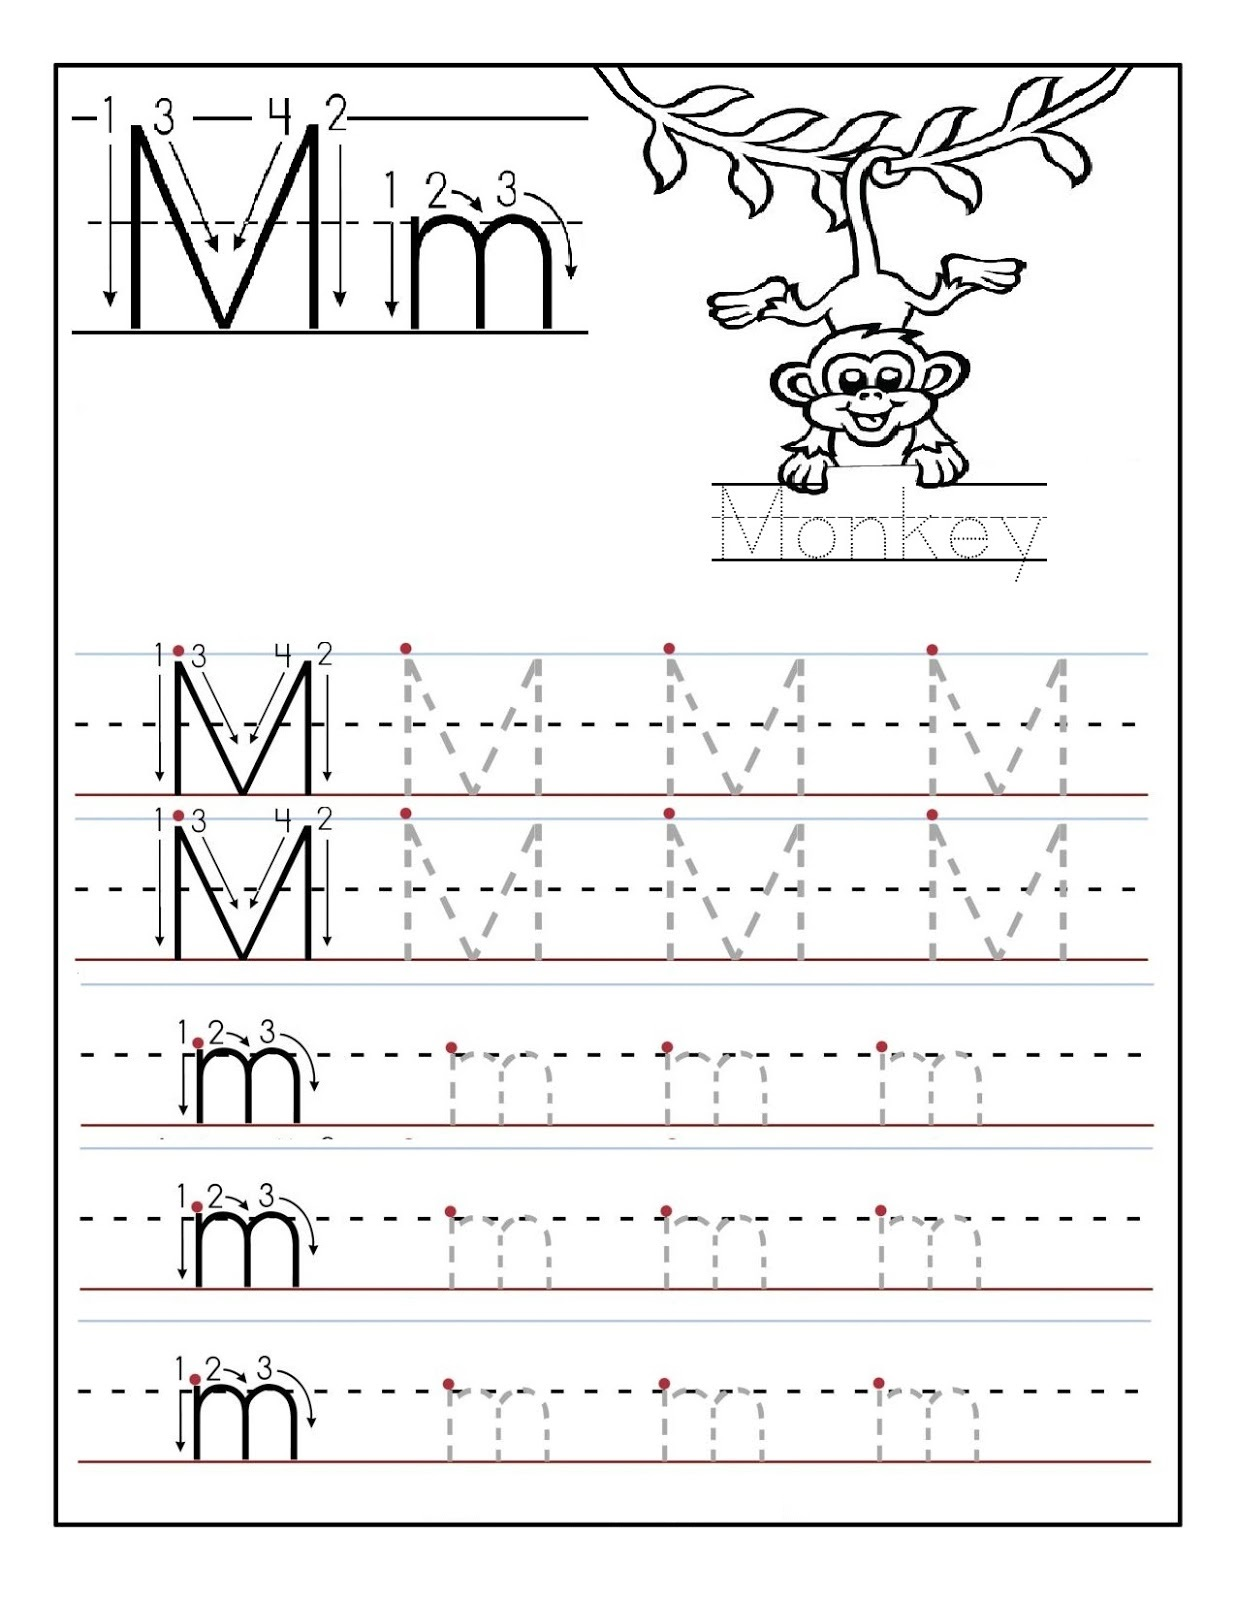 Learning To Write Worksheets Monkey Learning Printable